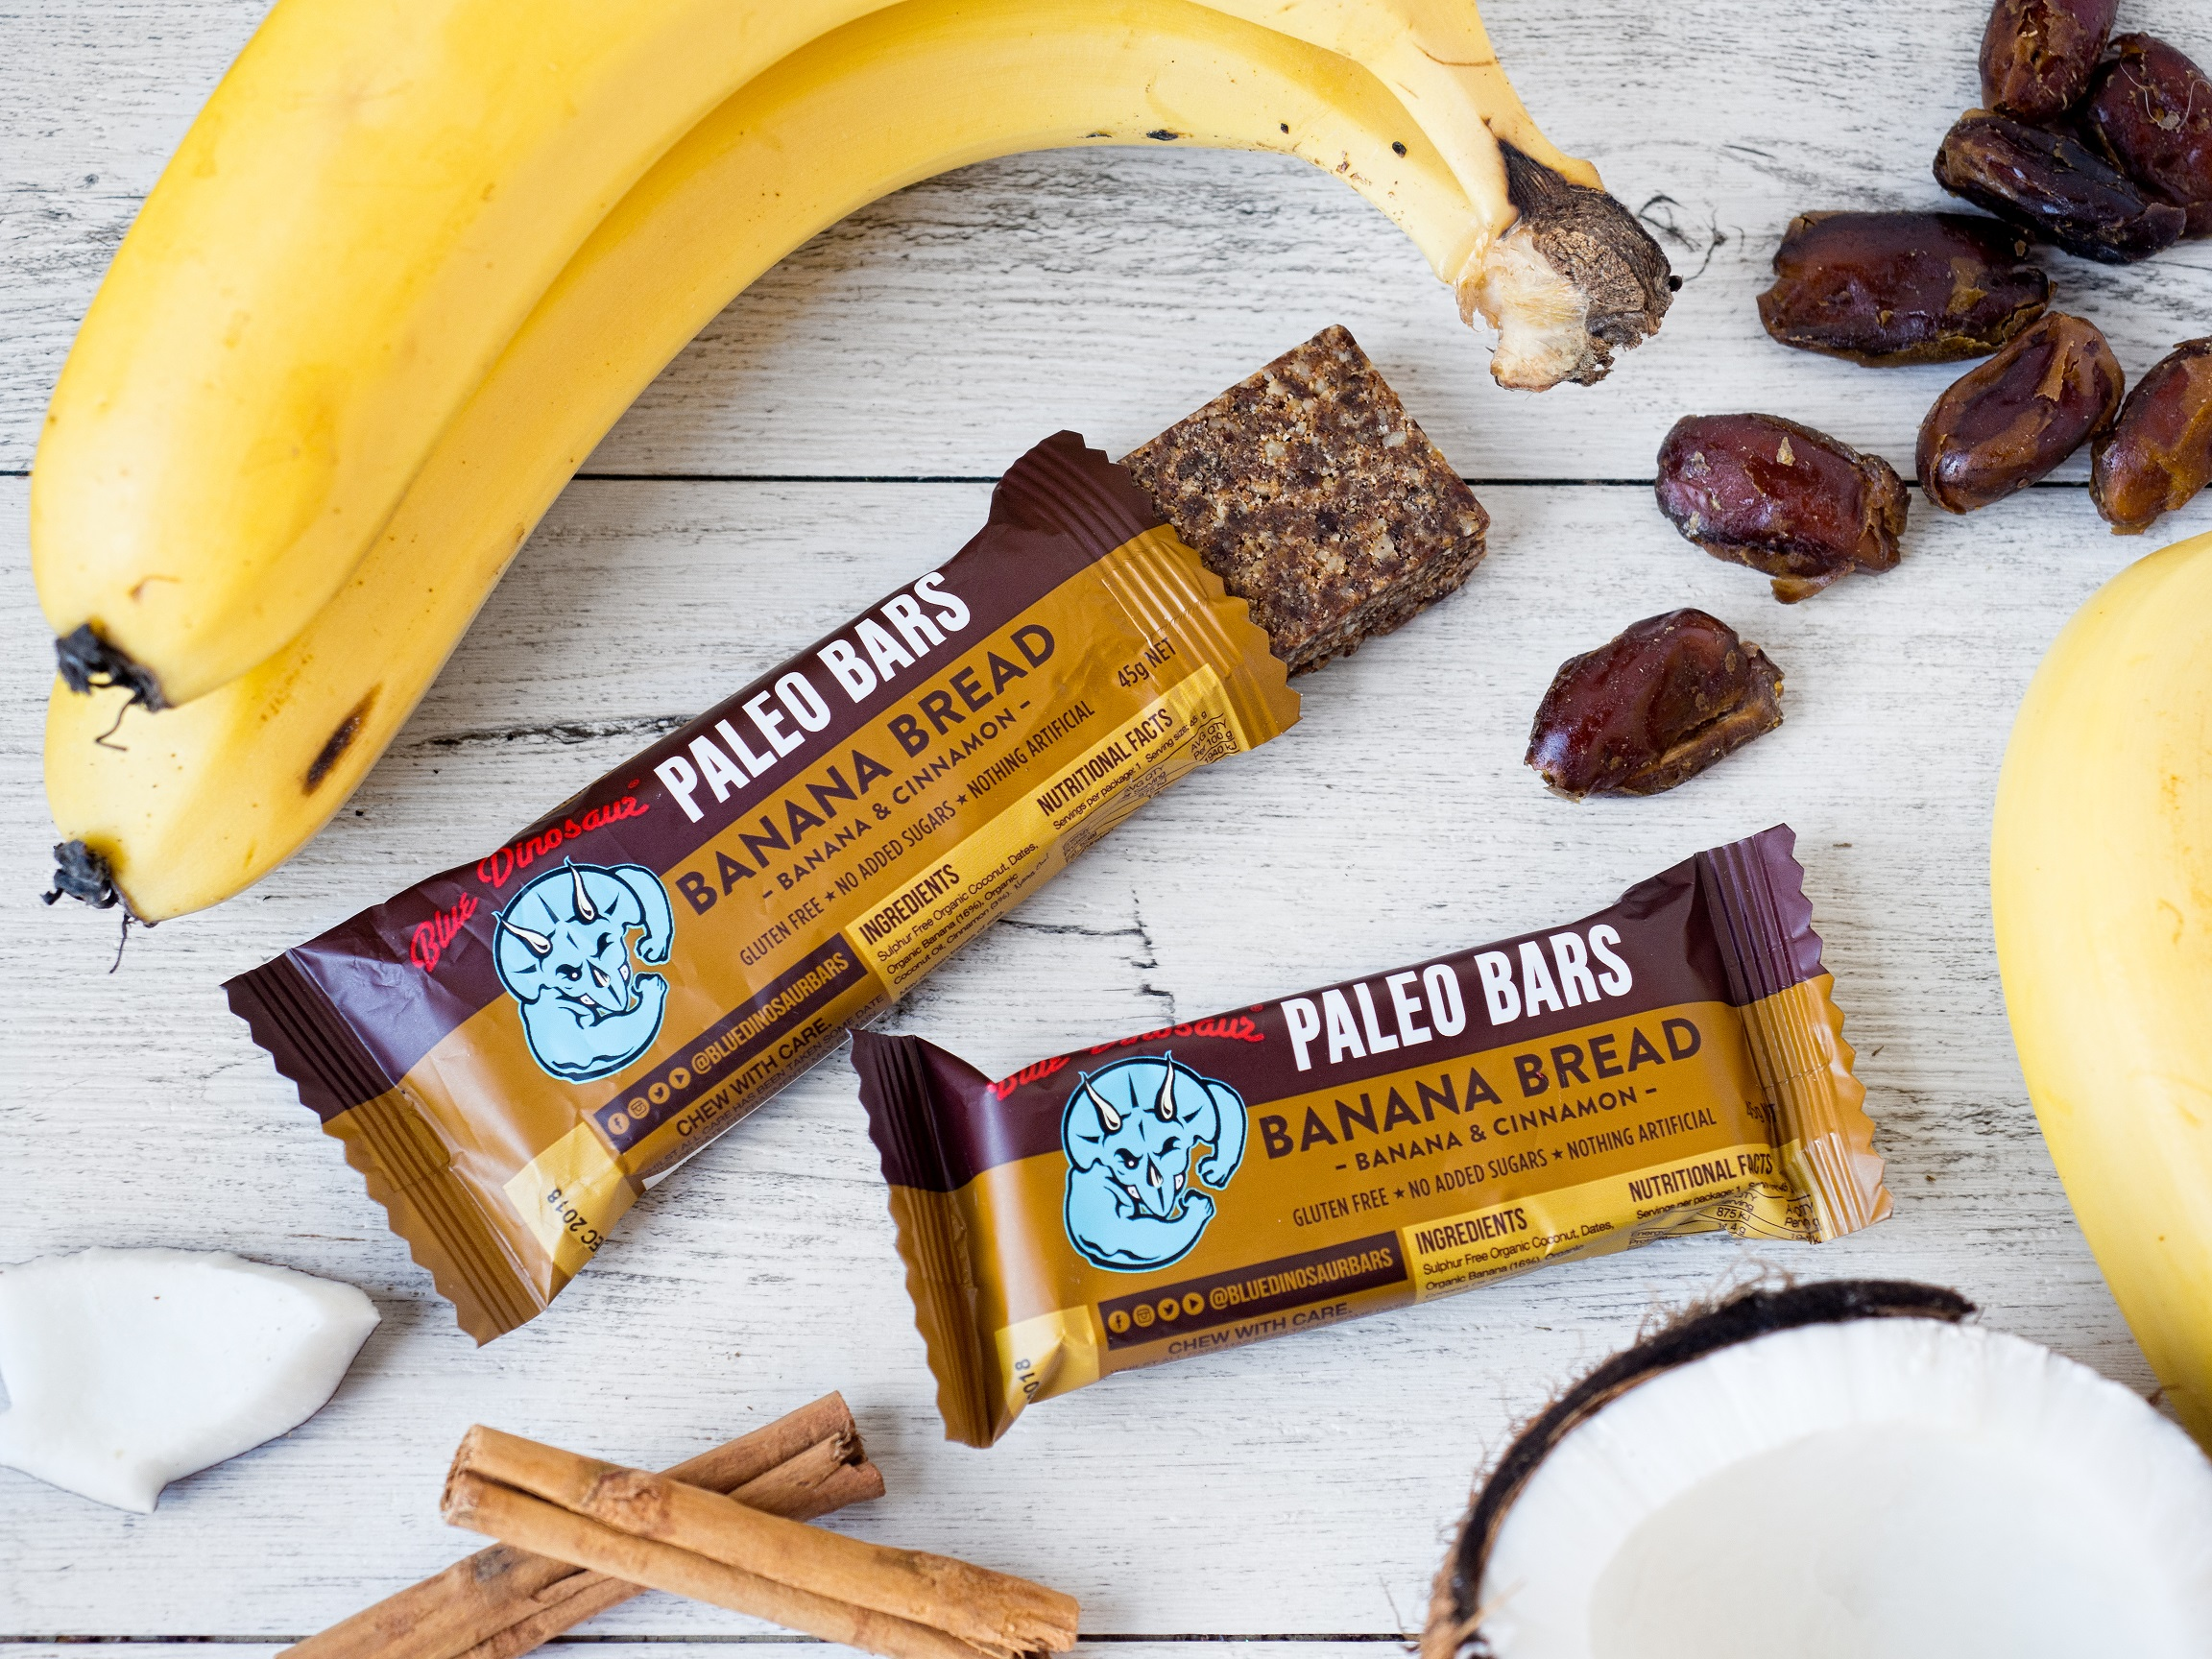 The six healthiest supermarket snack bar options for every dietary need